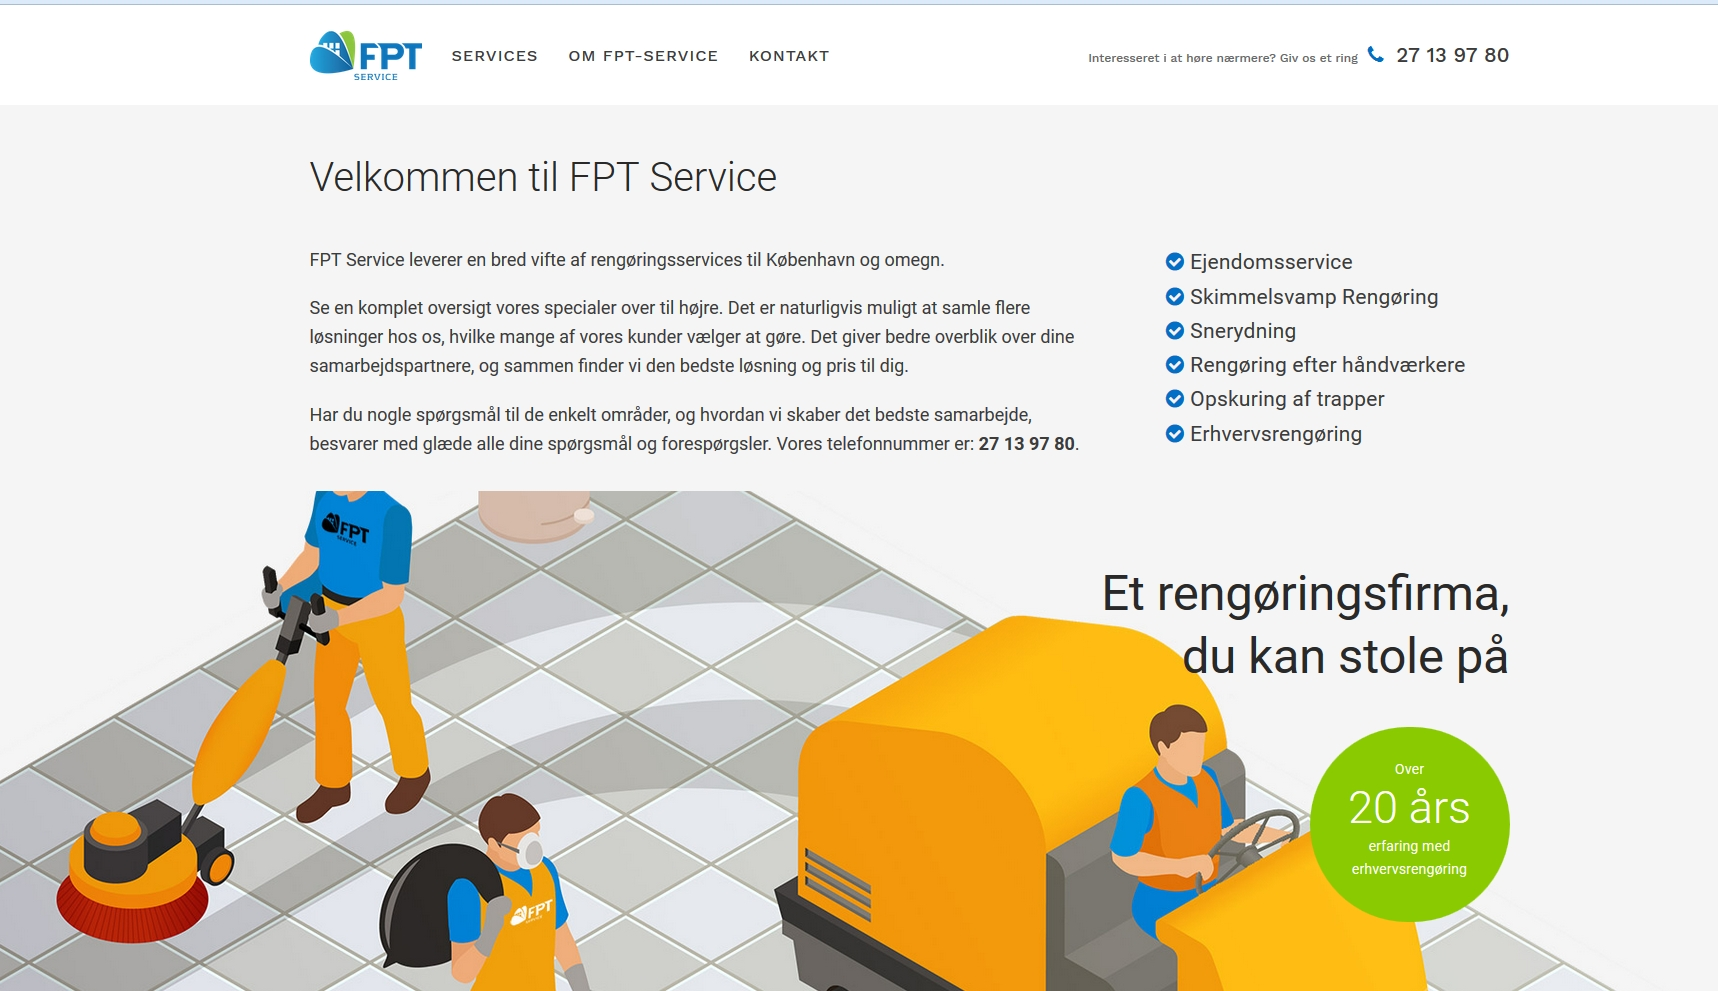 FPT Service